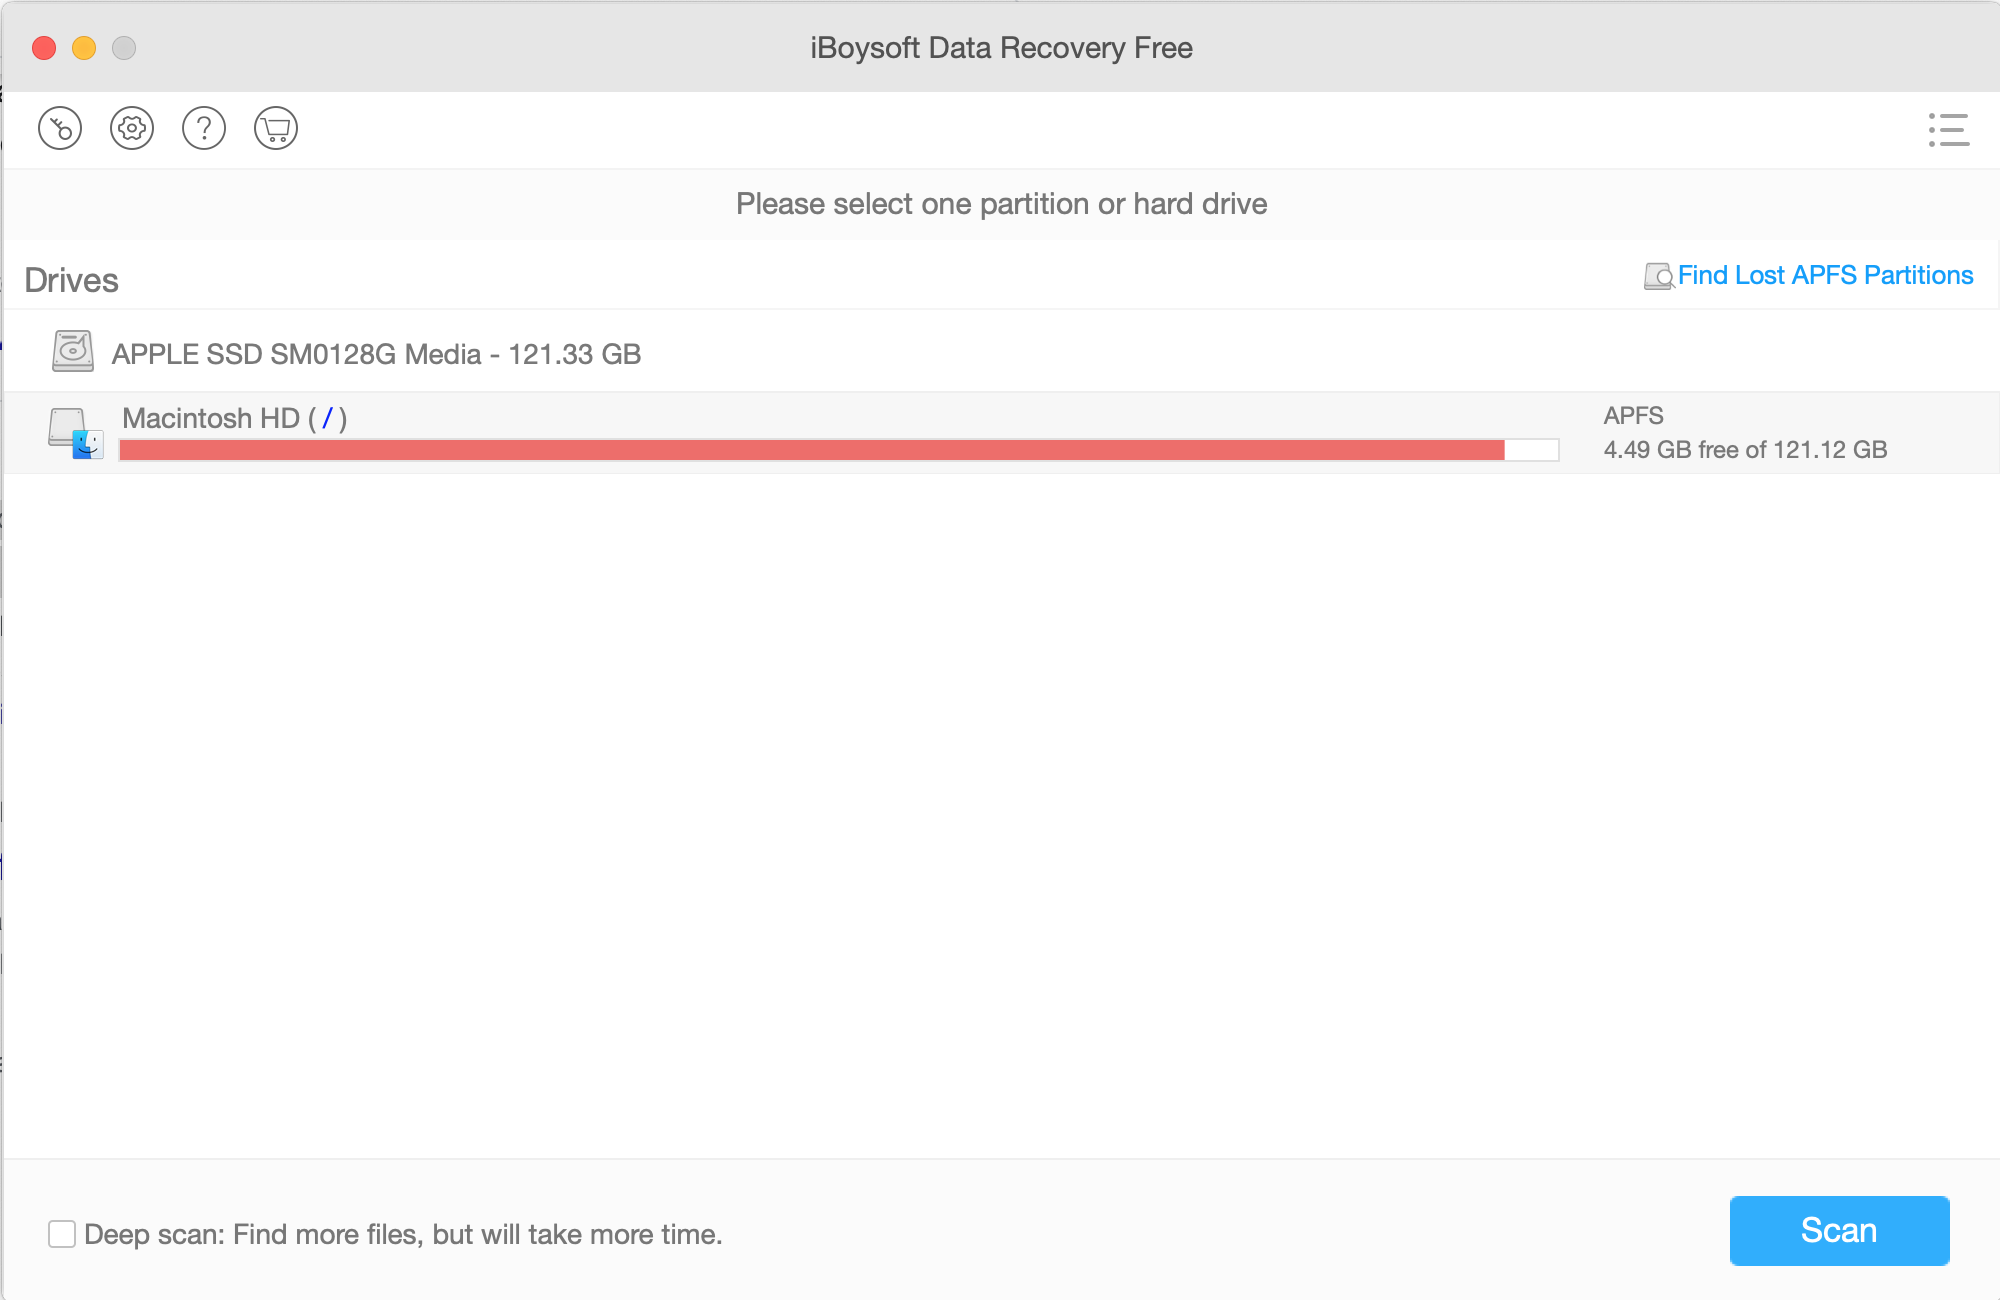 Recover Your Mac Data with iBoysoft Data Recovery 2